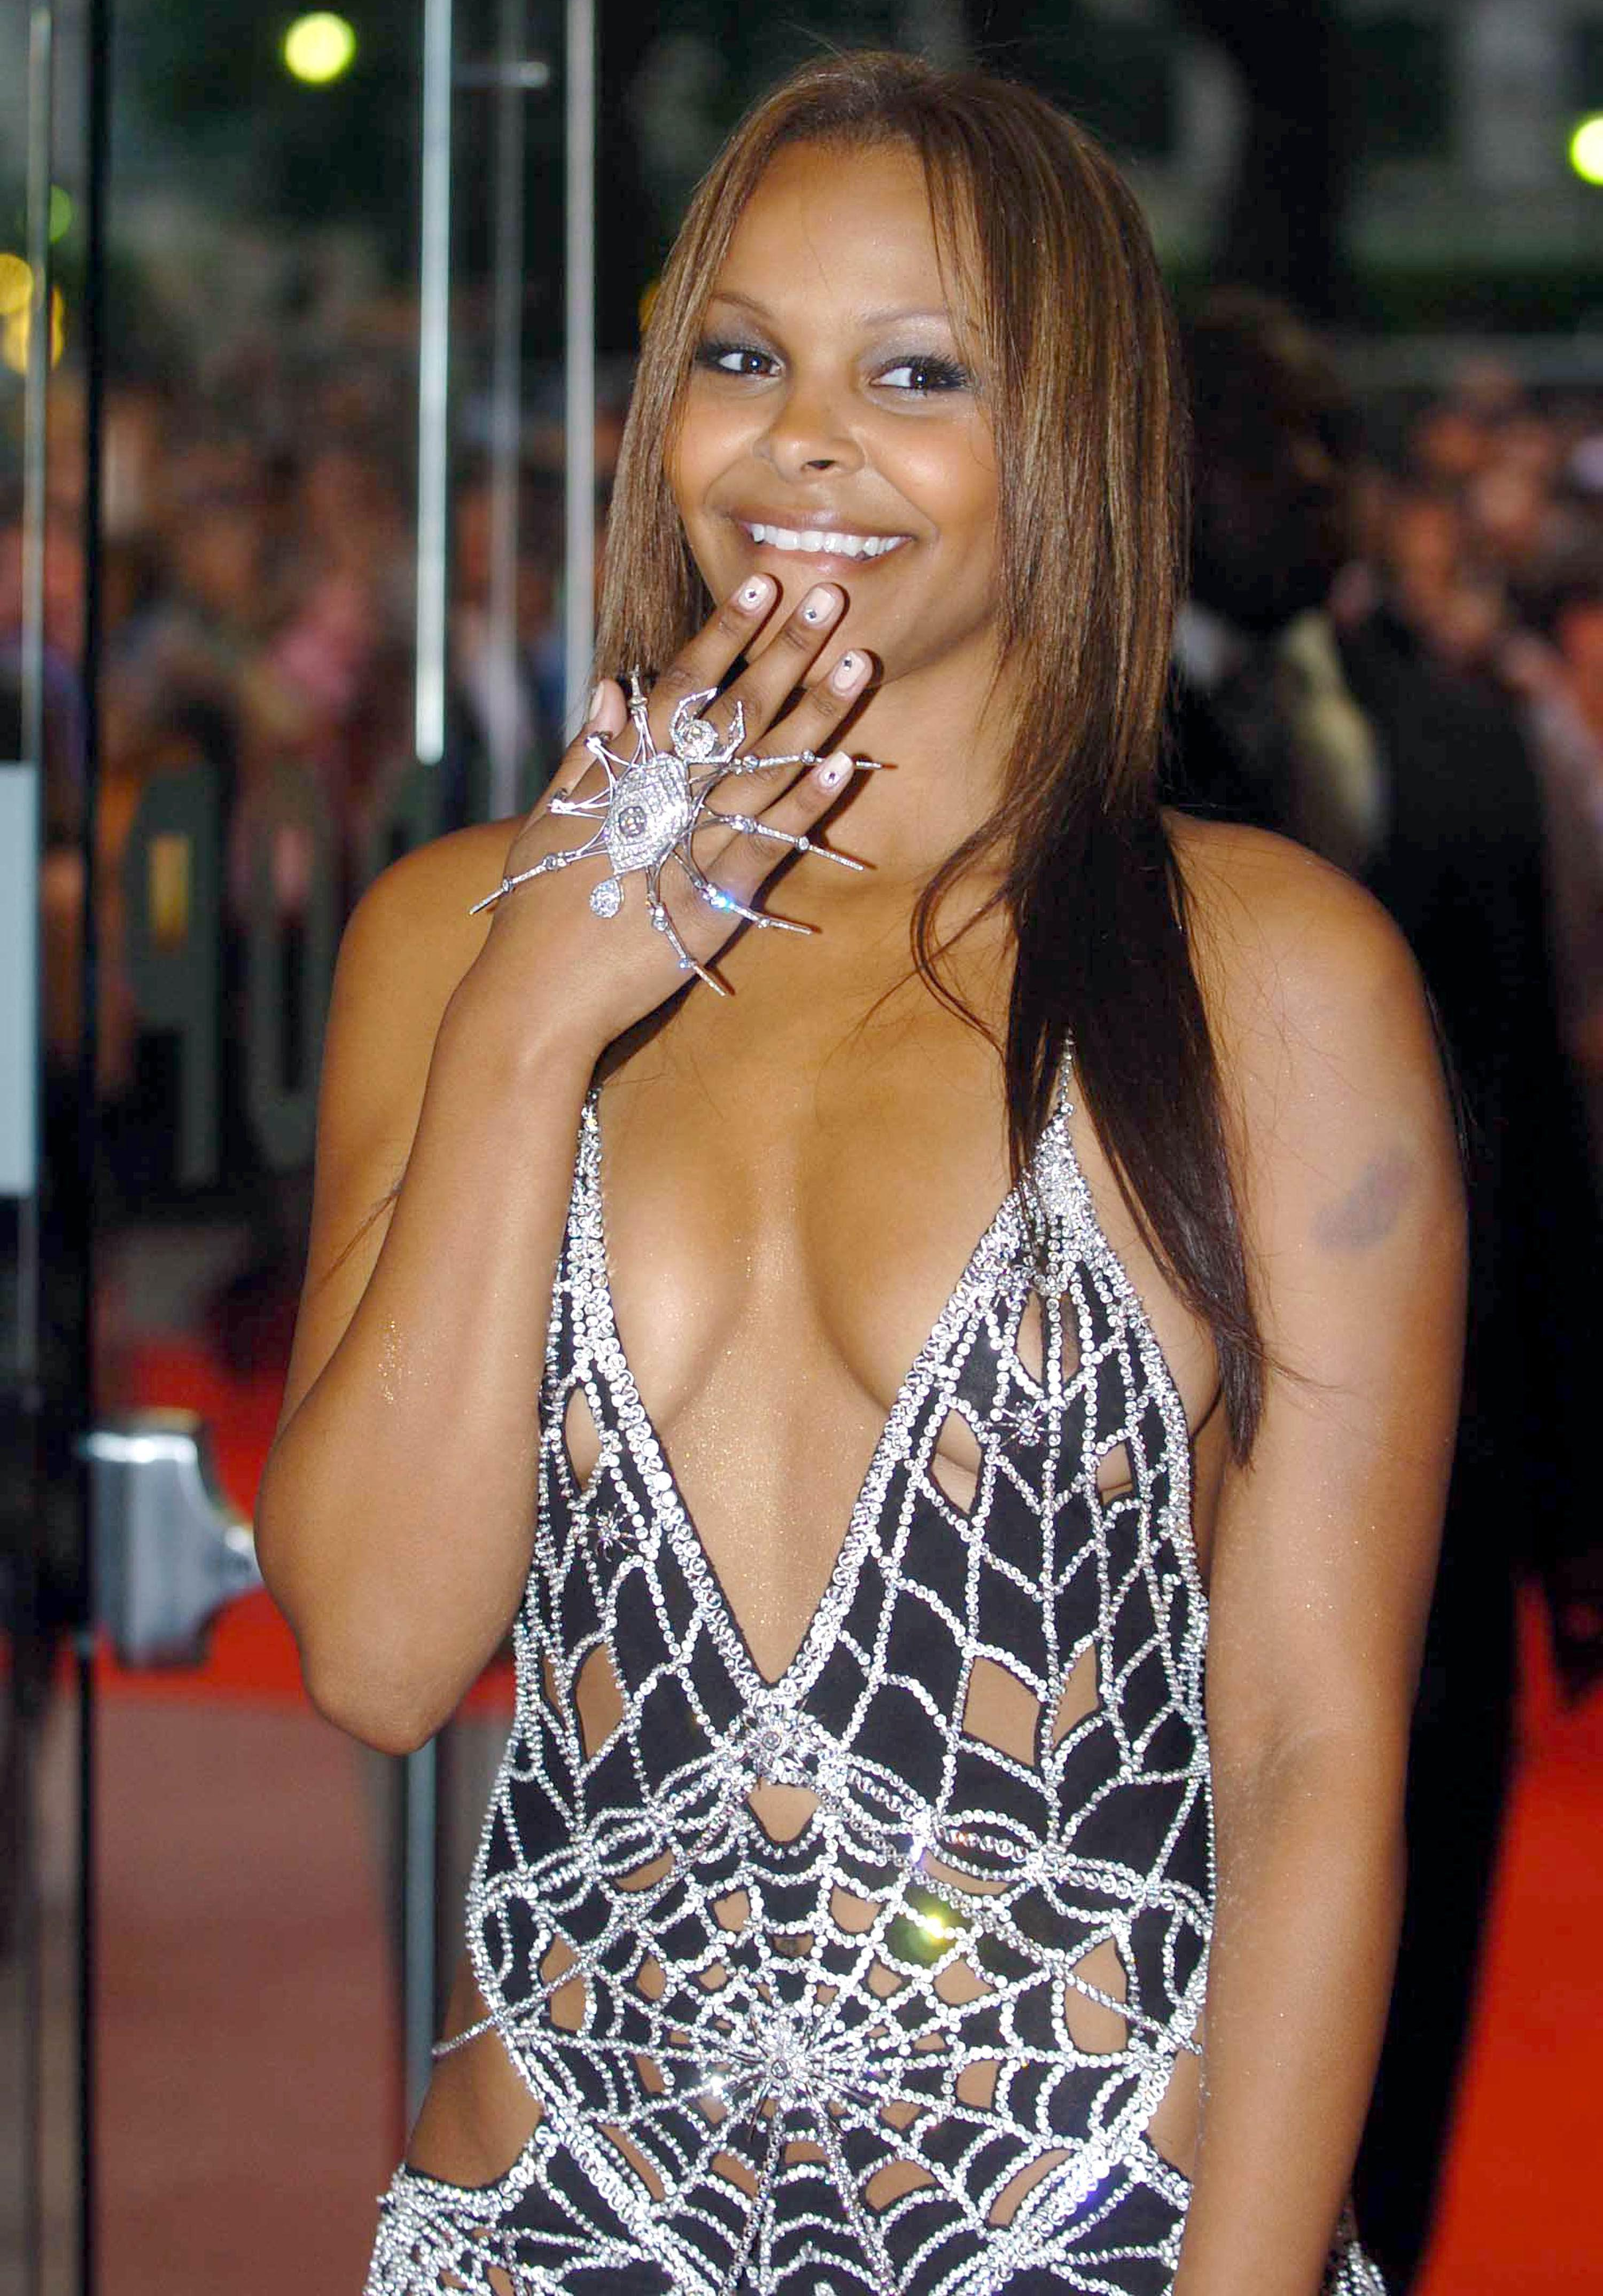 Topless Samantha Mumba nudes (47 foto and video), Sexy, Fappening, Boobs, bra 2017